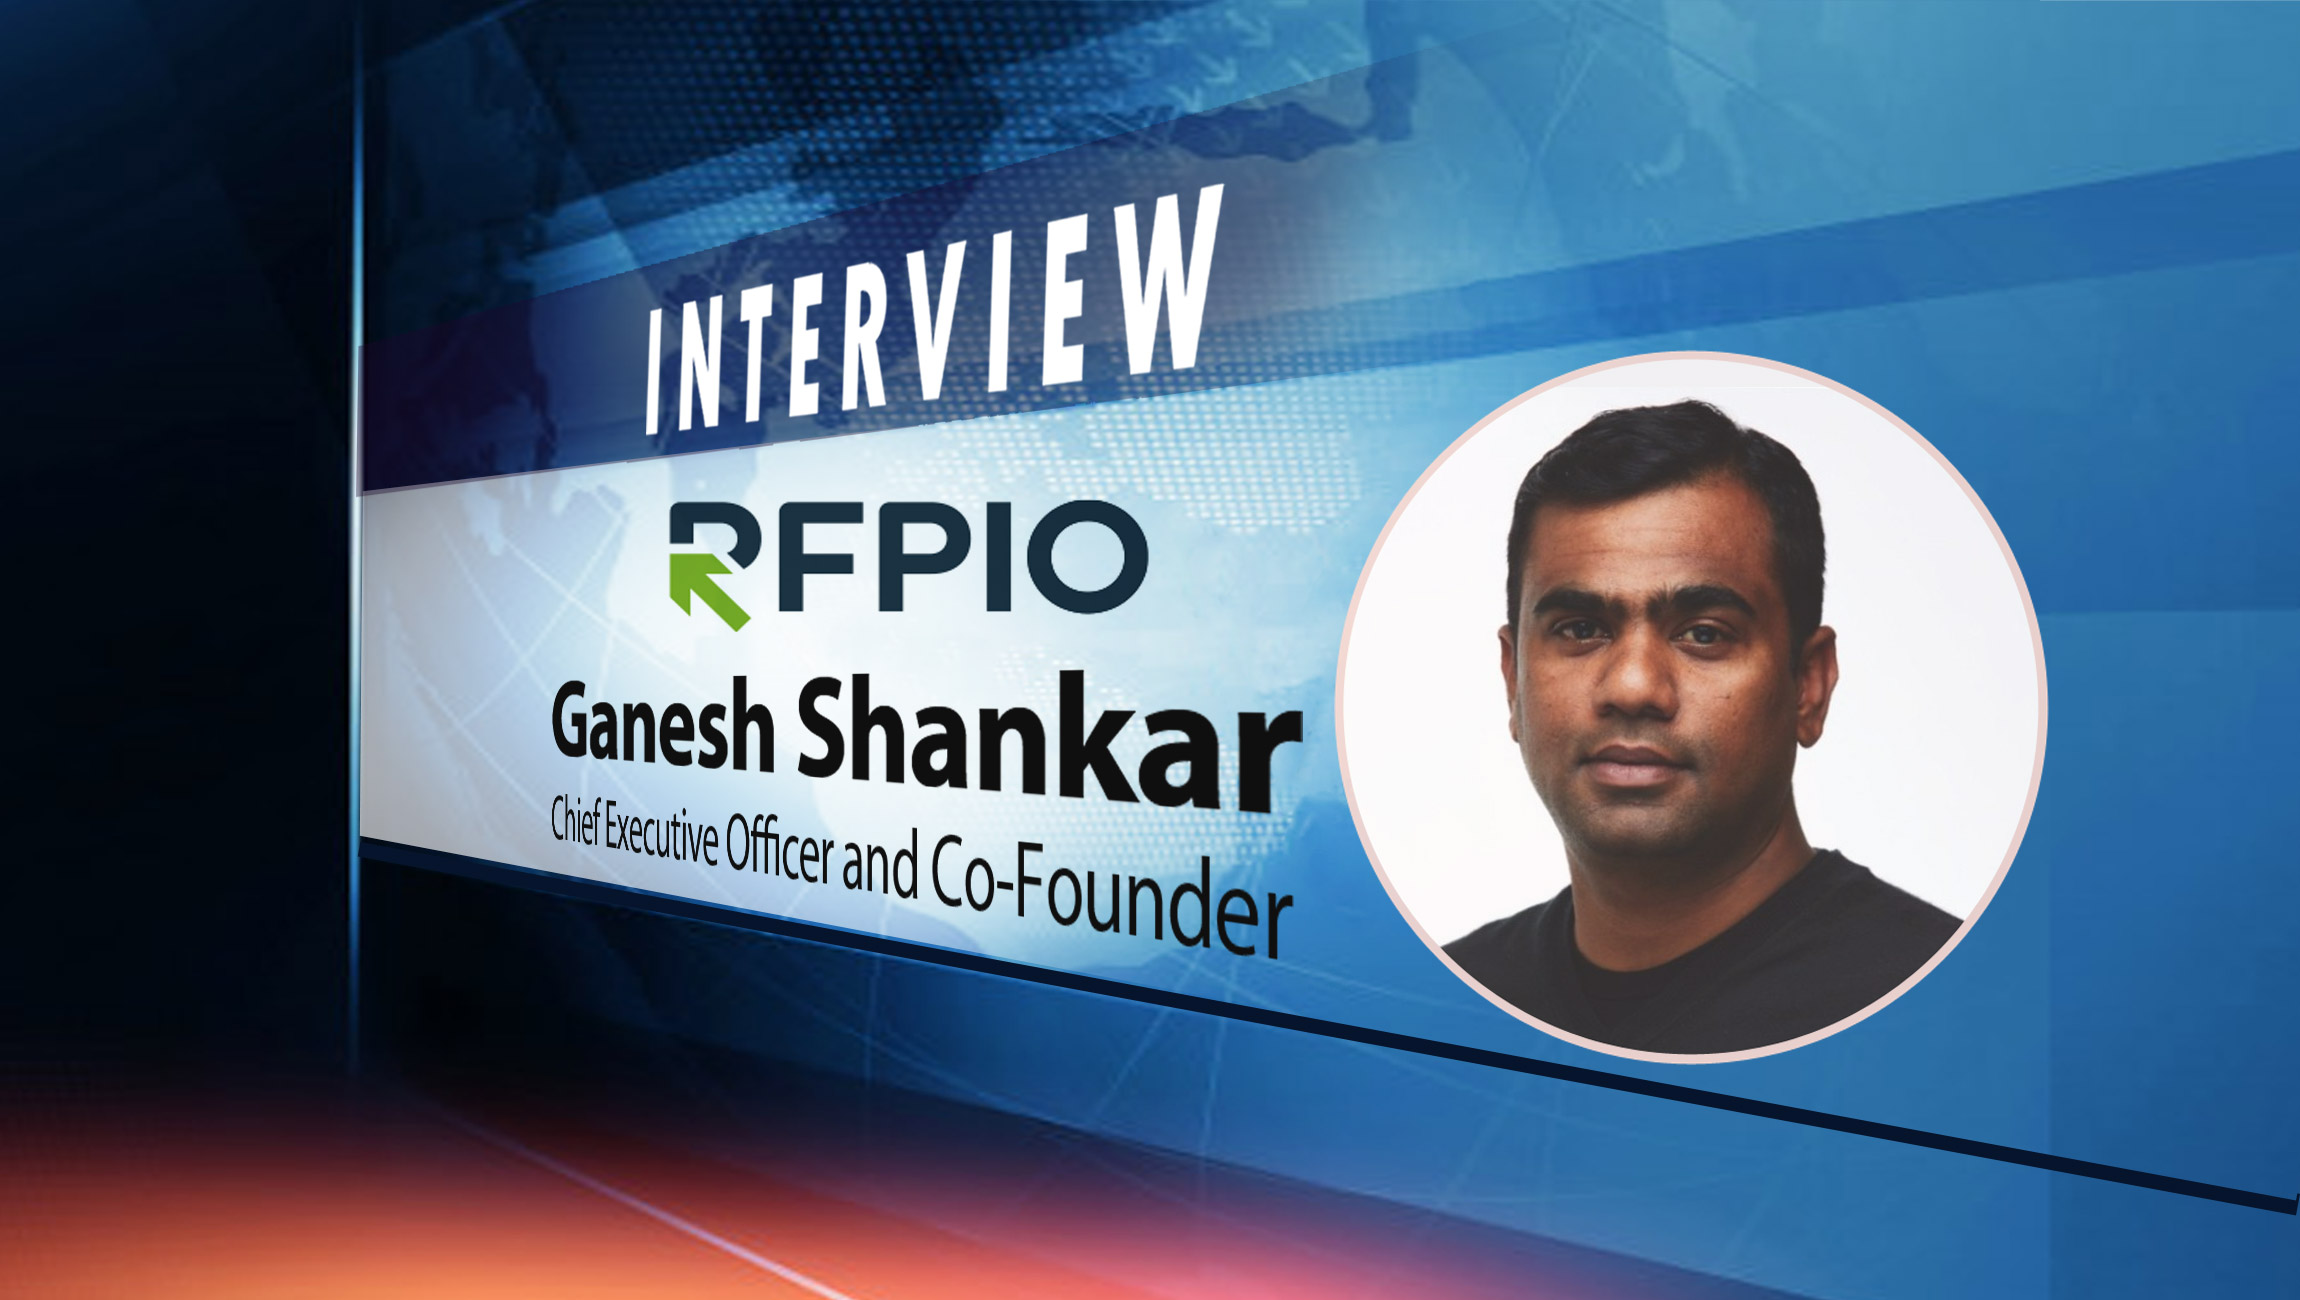 SalesTechStar Interview with Ganesh Shankar, Chief Executive Officer and Co-Founder of RFPIO